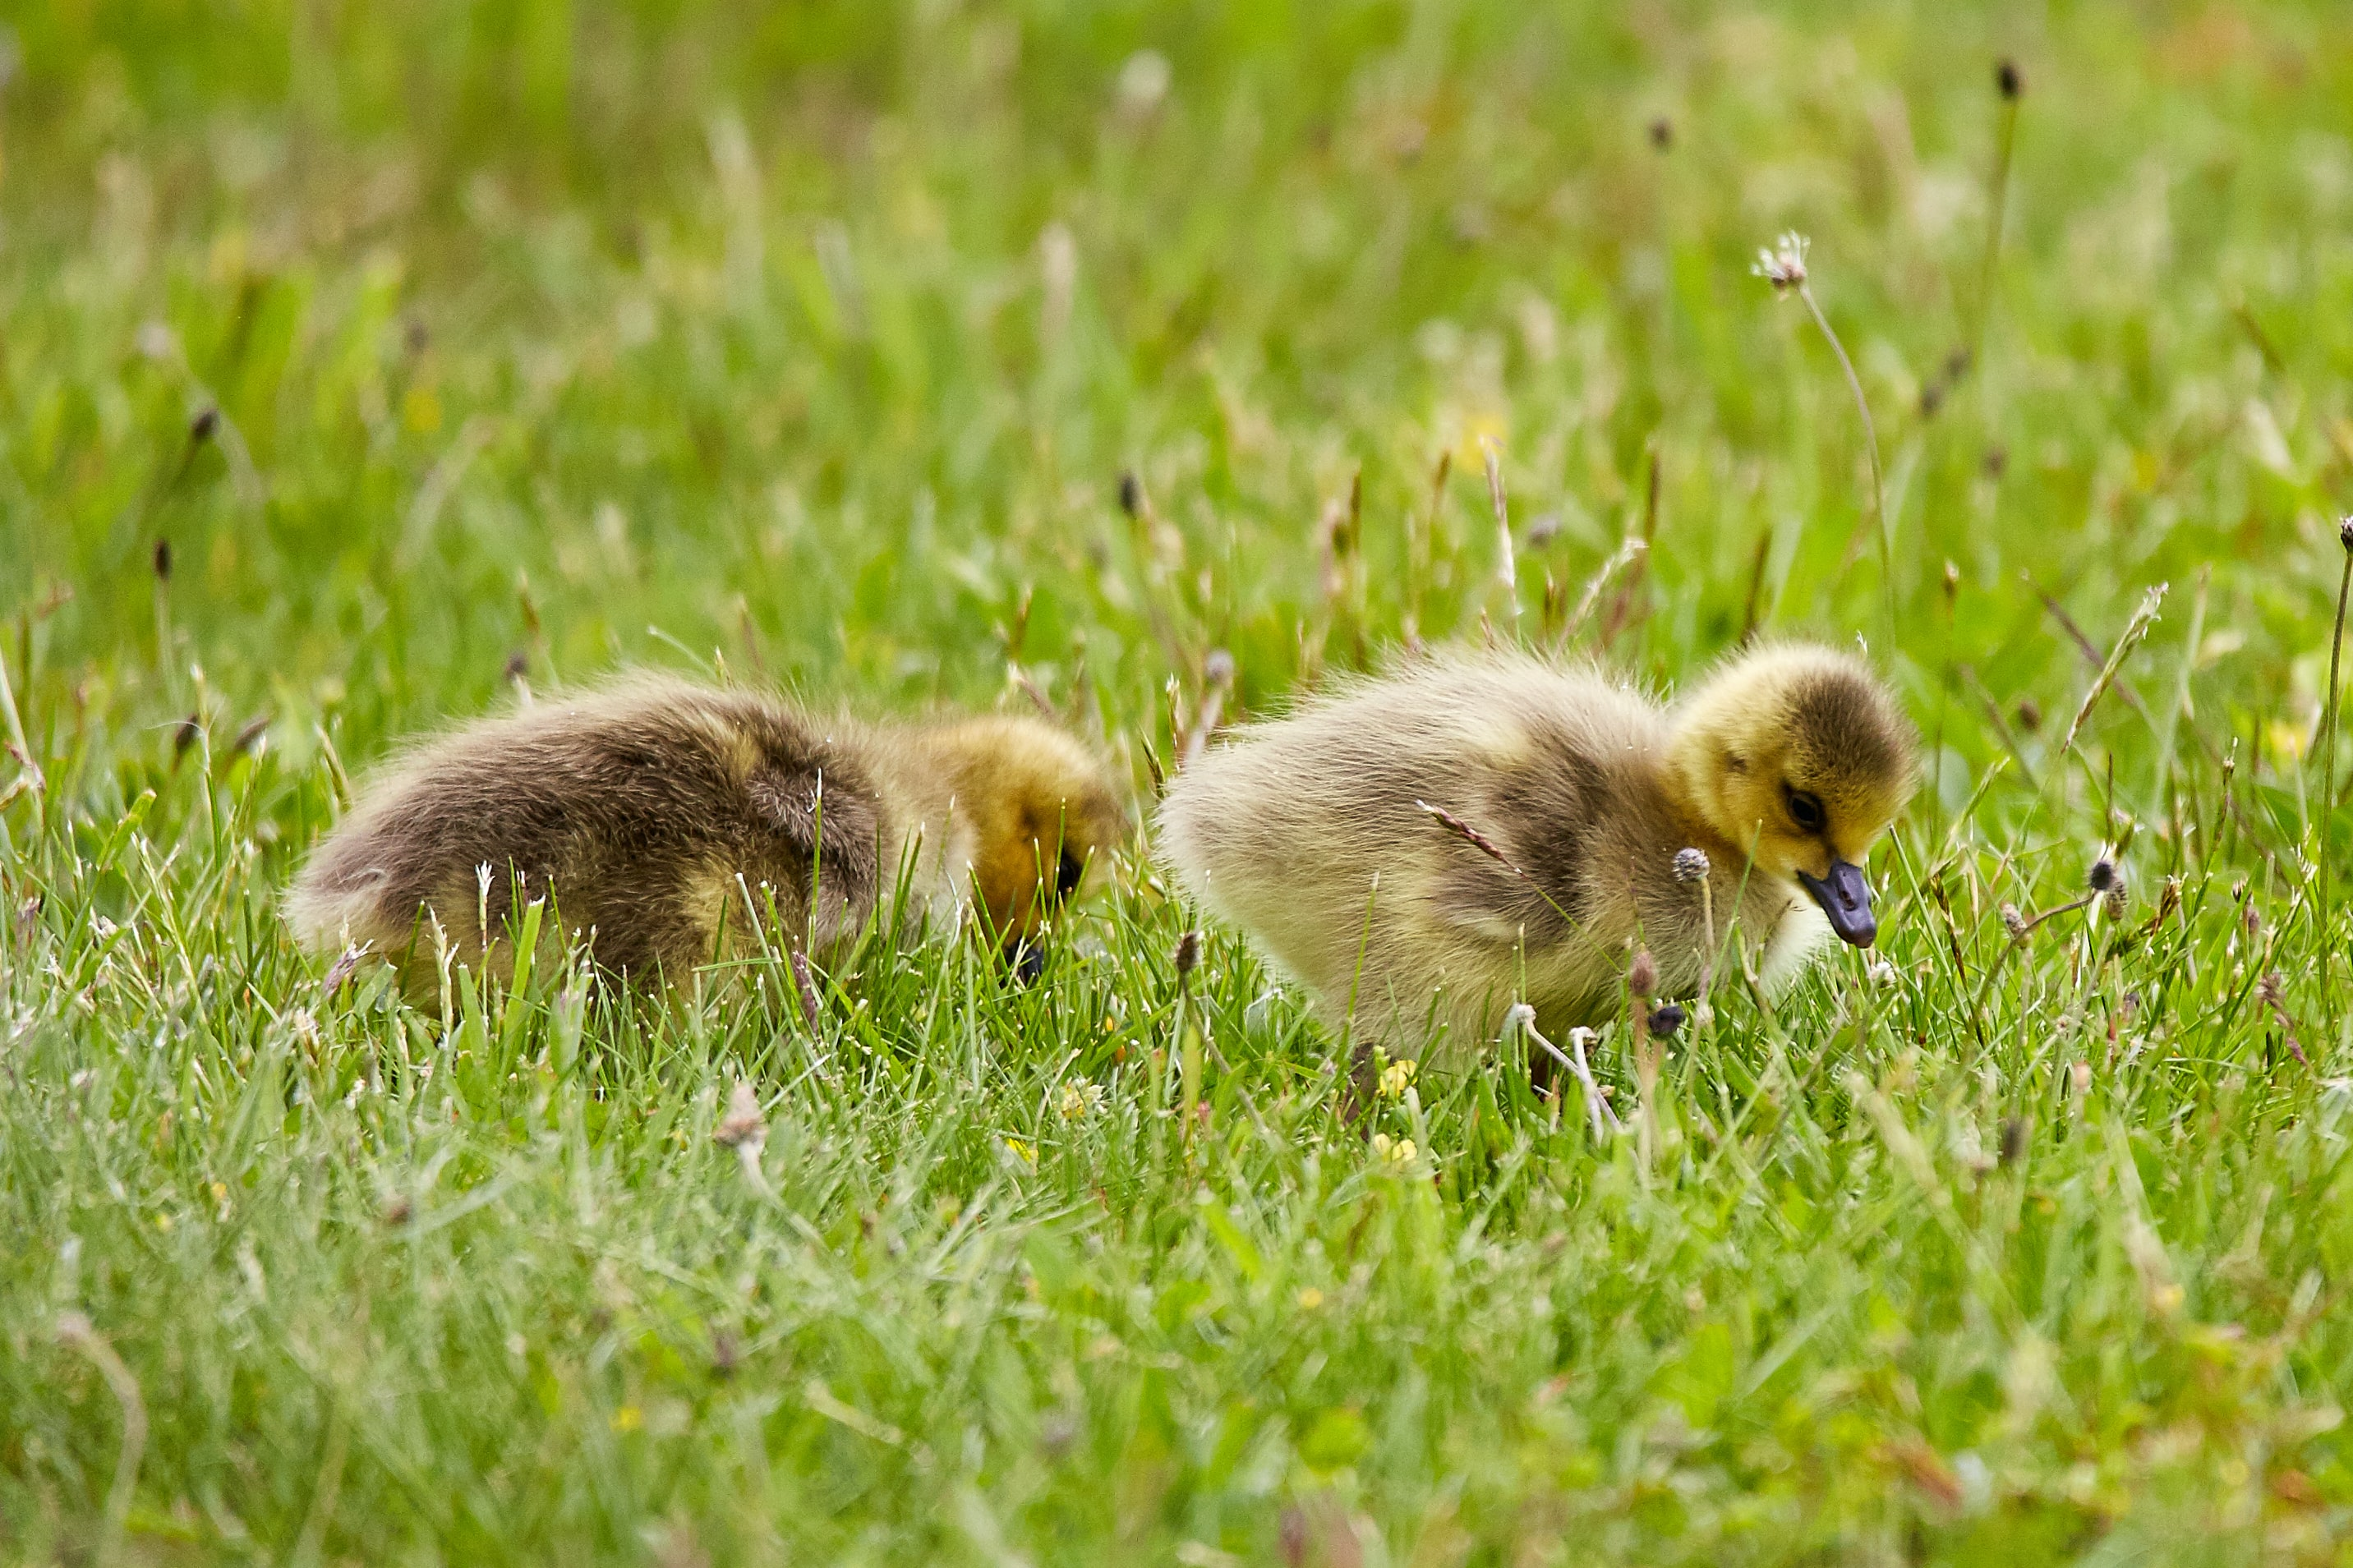 two yellow ducklings on green grass